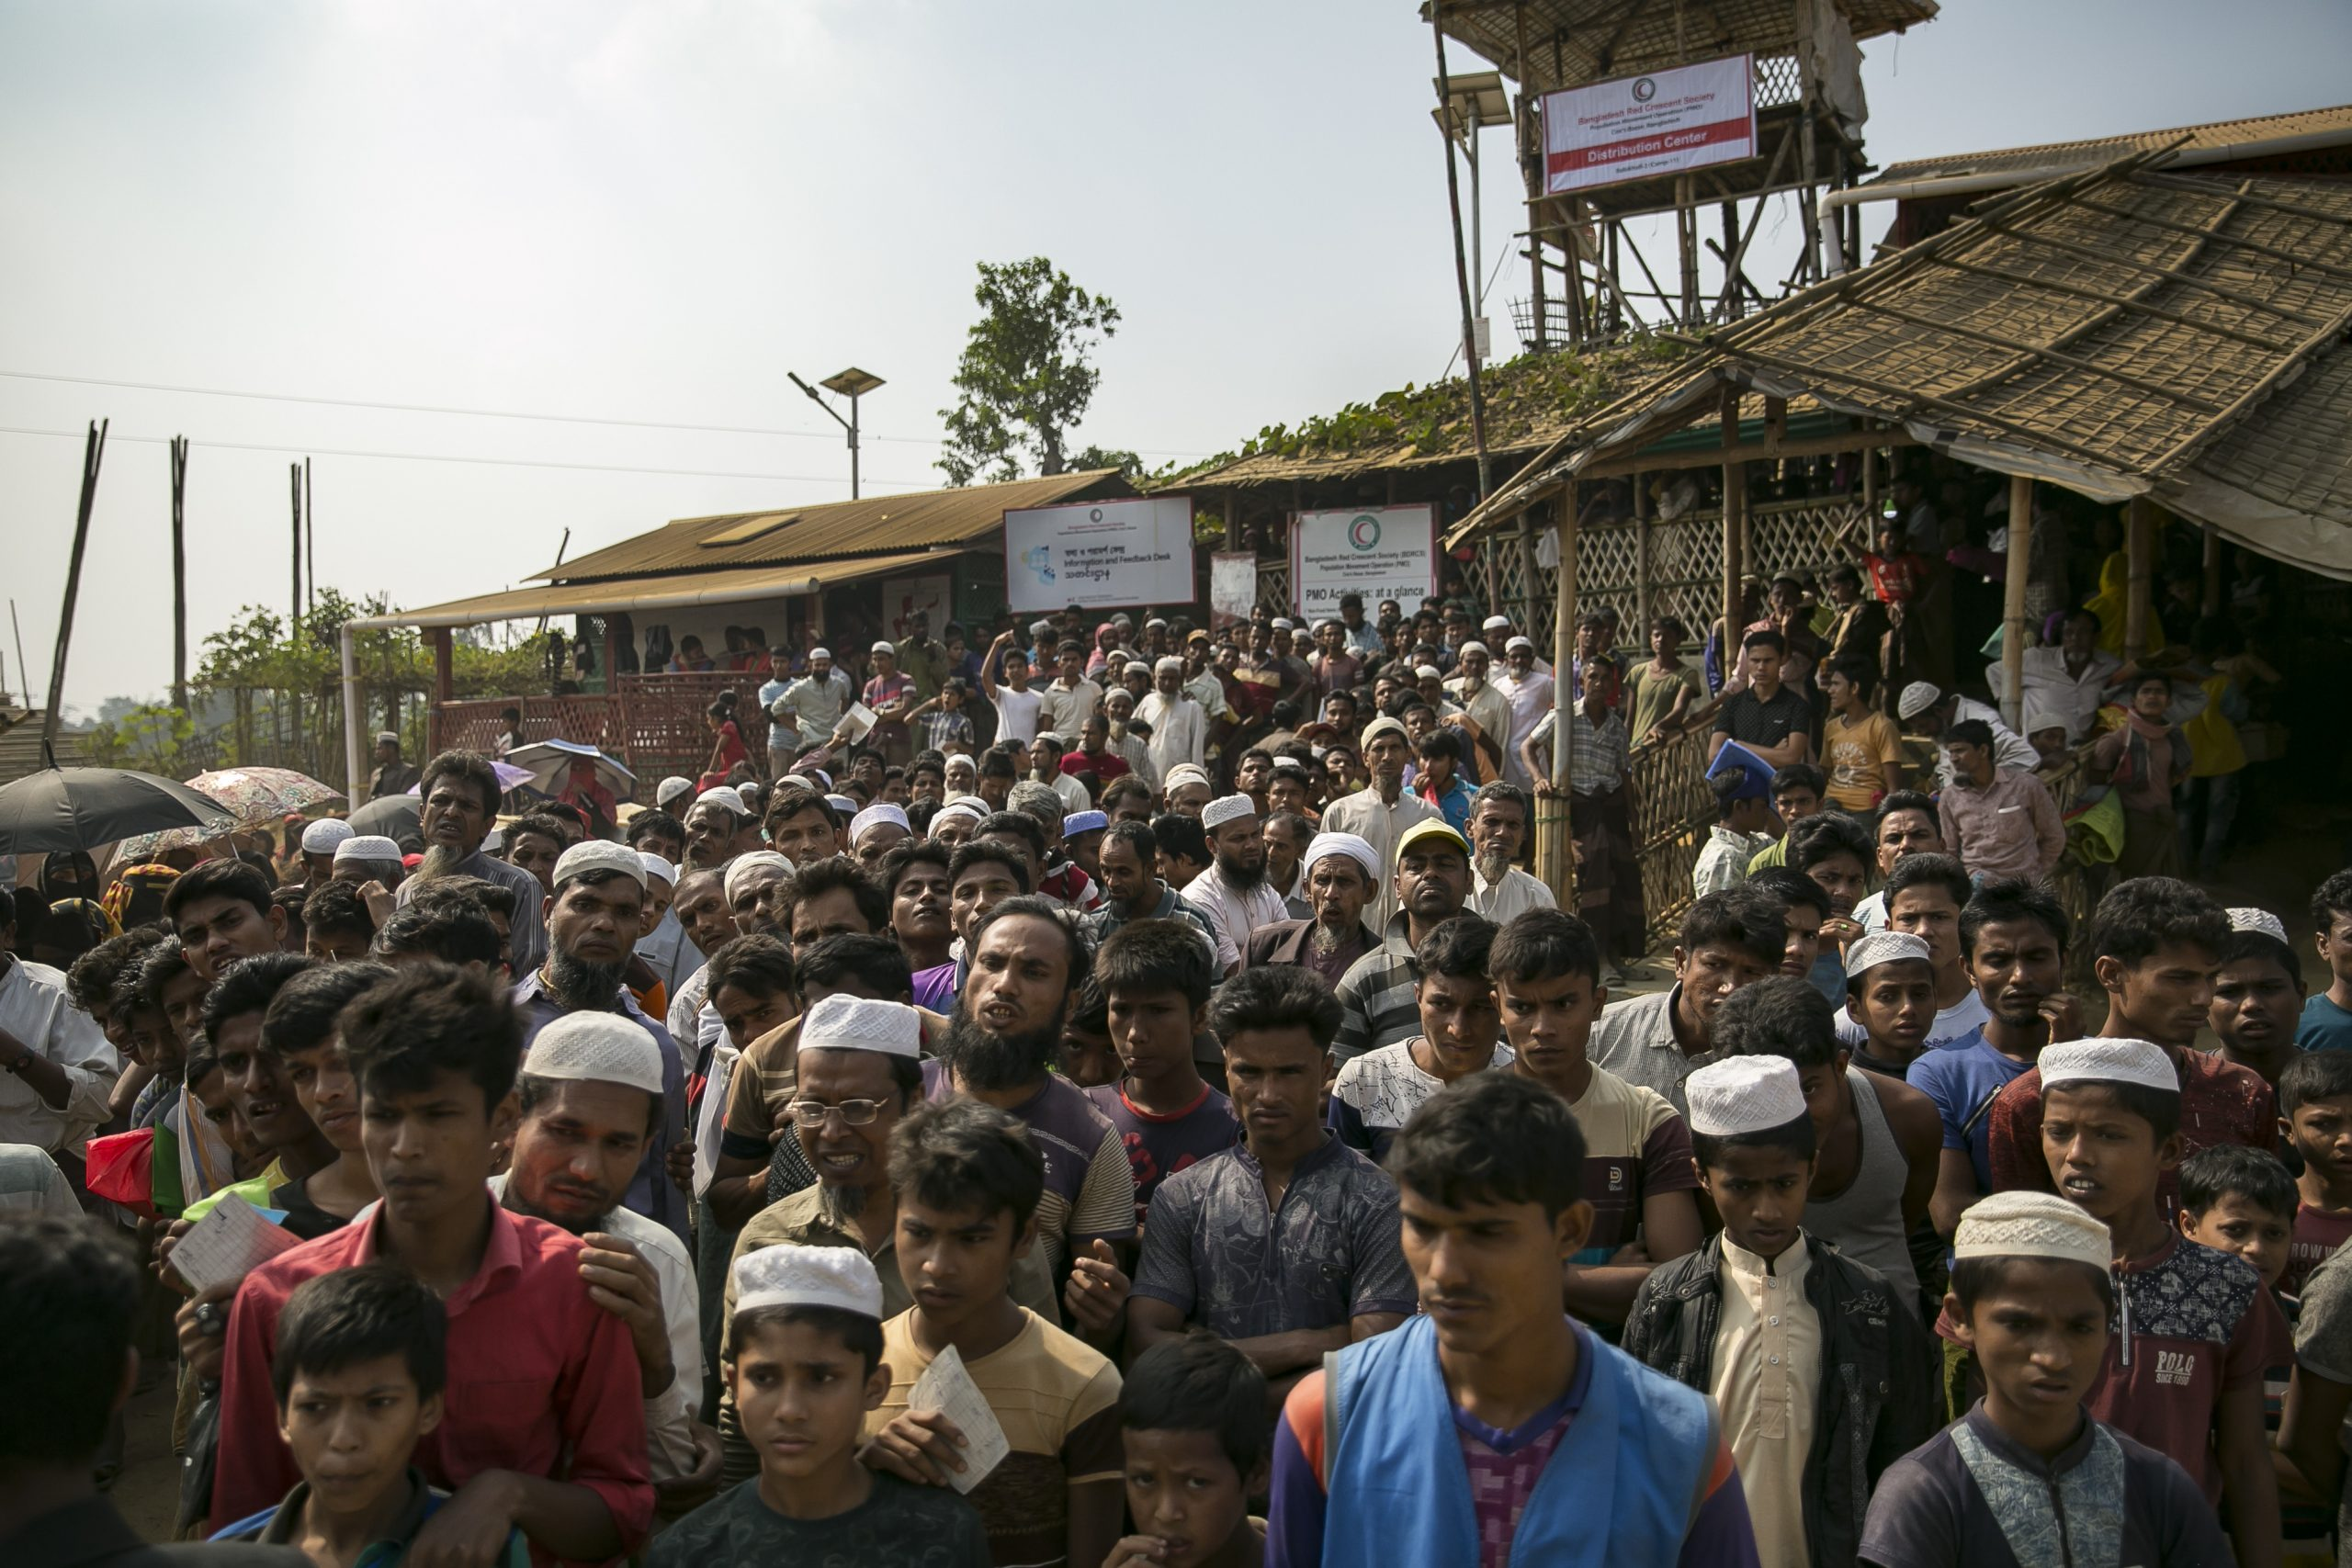 COX'S BAZAR, BANGLADESH - DECEMBER 11: Rohingya refugees queue for a blanket distribution in a refugee camp on December 11, 2019 in Cox's Bazar, Bangladesh. The UN's International Court of Justice in The Hague began on Tuesday hearing a case filed by The Gambia against Myanmar over the Rohingya genocide case. (Photo by Allison Joyce/Getty Images)